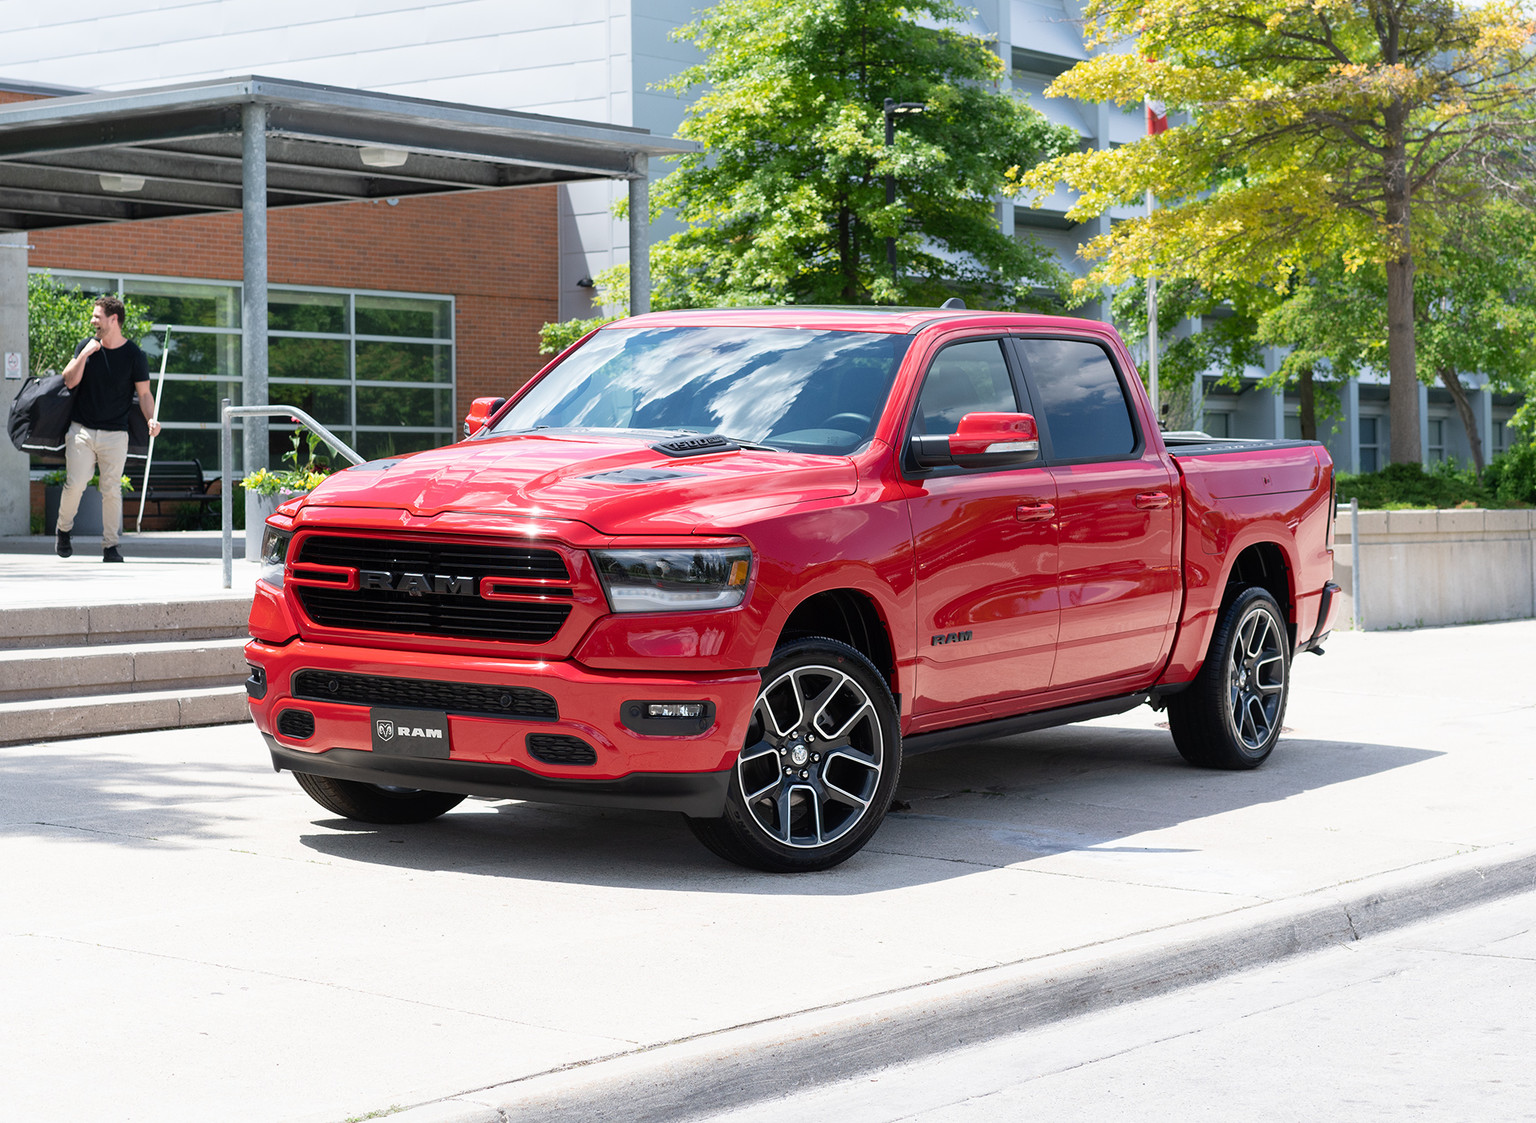 The 2021 Ram 1500 Sport Ram Trucks Canada